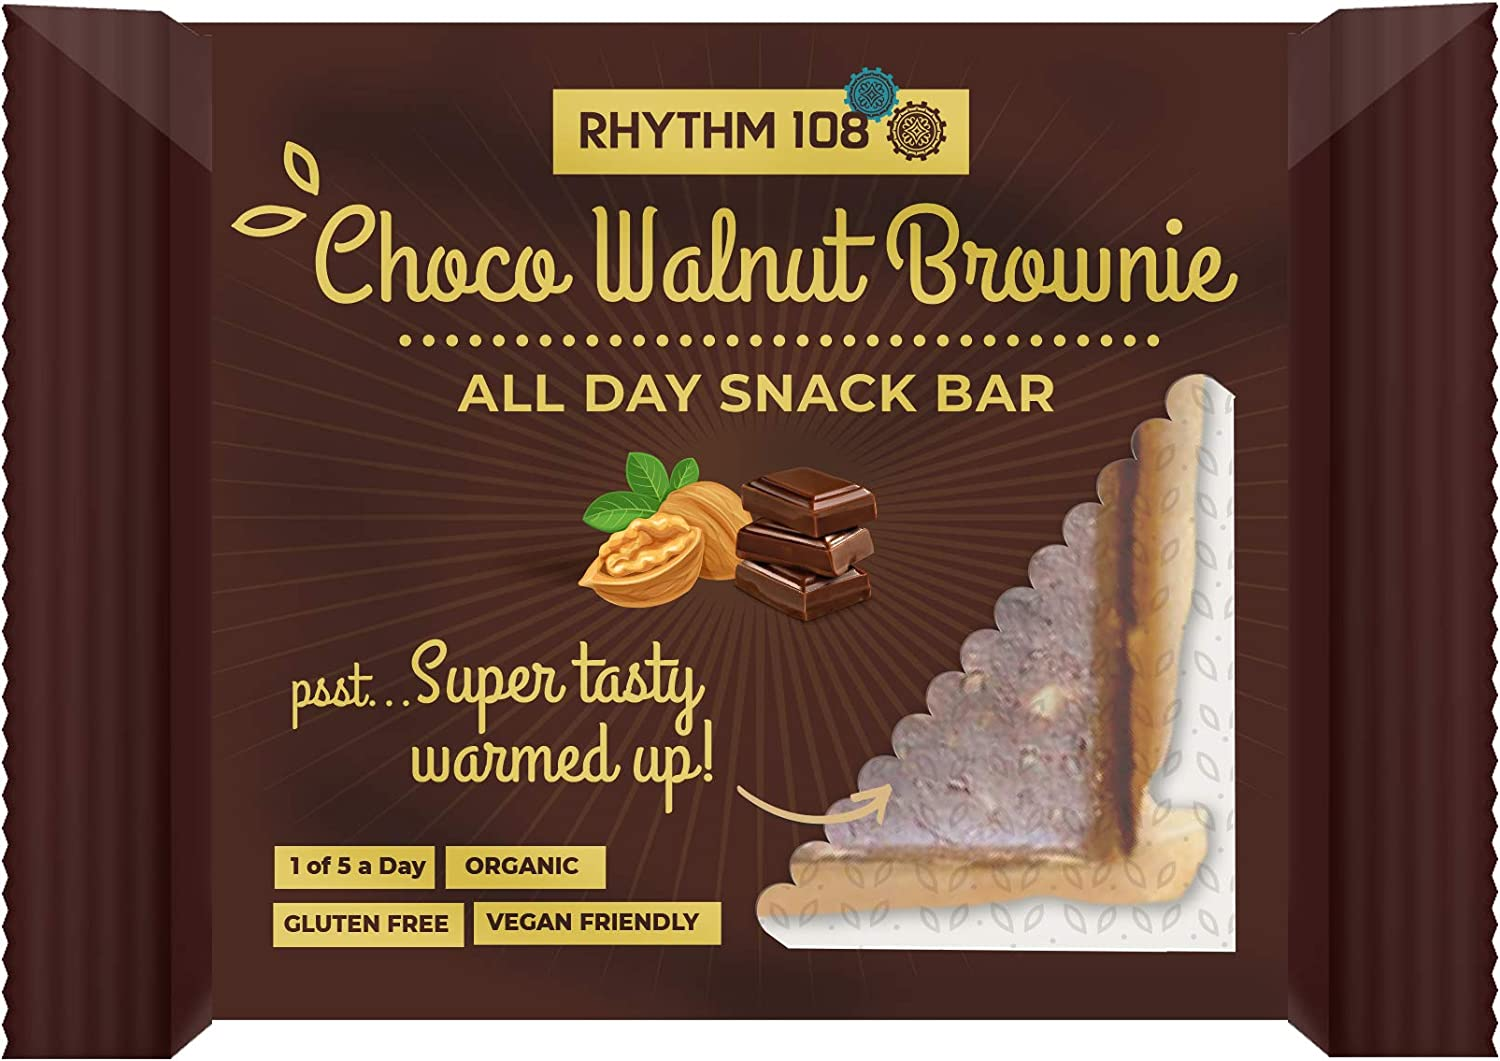 Rhythm 108 Organic Gluten Free Choco Walnut Brownie Dessert Bars – 12x40g